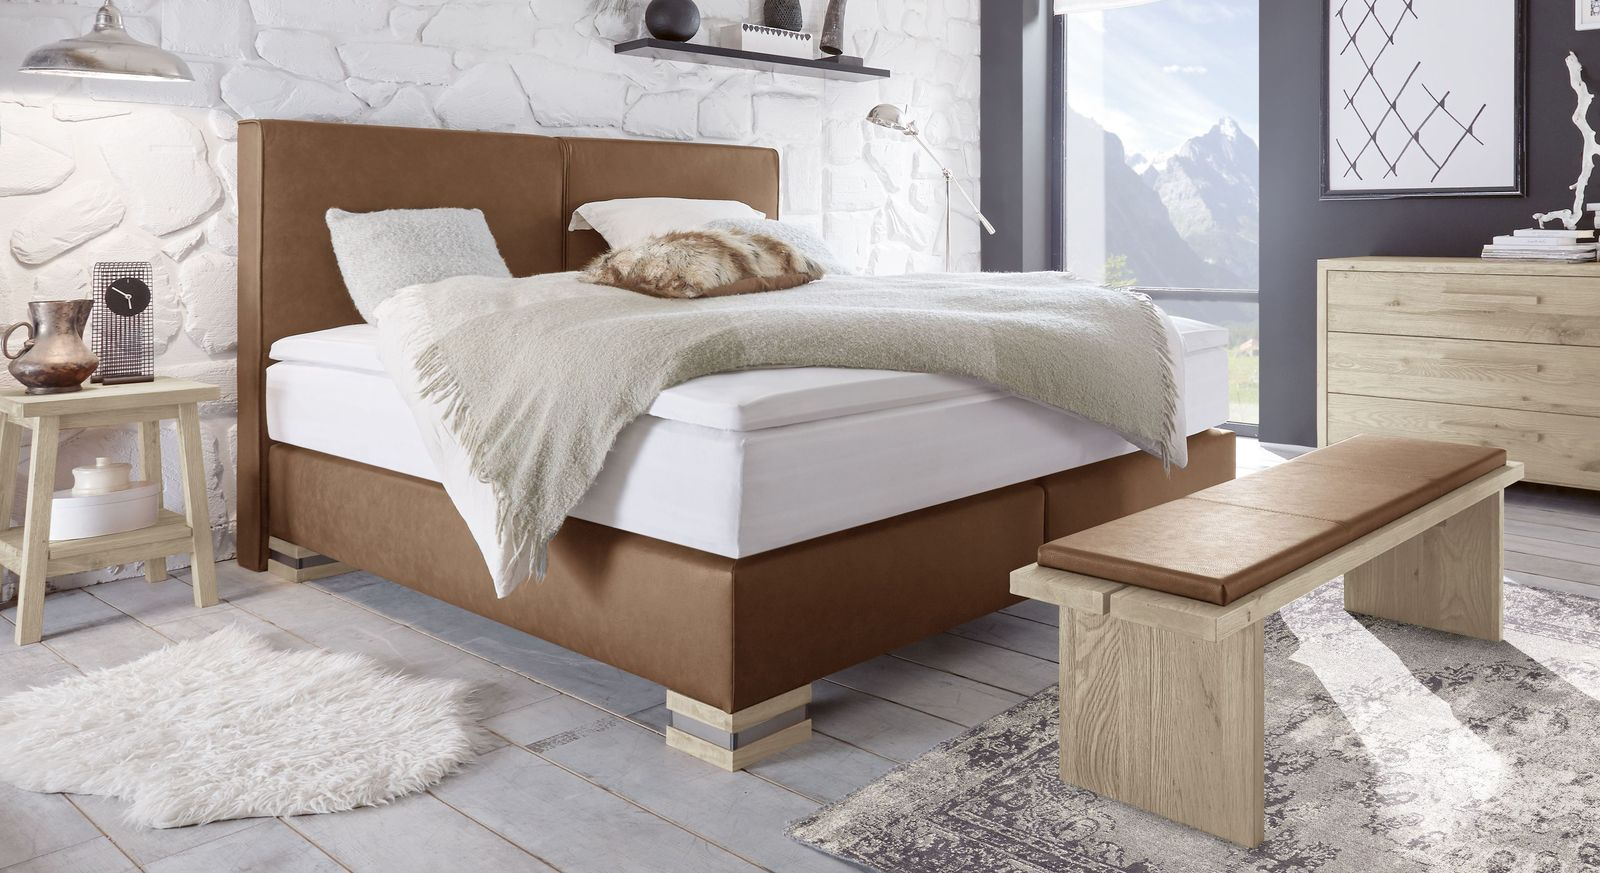 boxspringbett mit waschbarem matratzenbezug kunstleder tholen. Black Bedroom Furniture Sets. Home Design Ideas